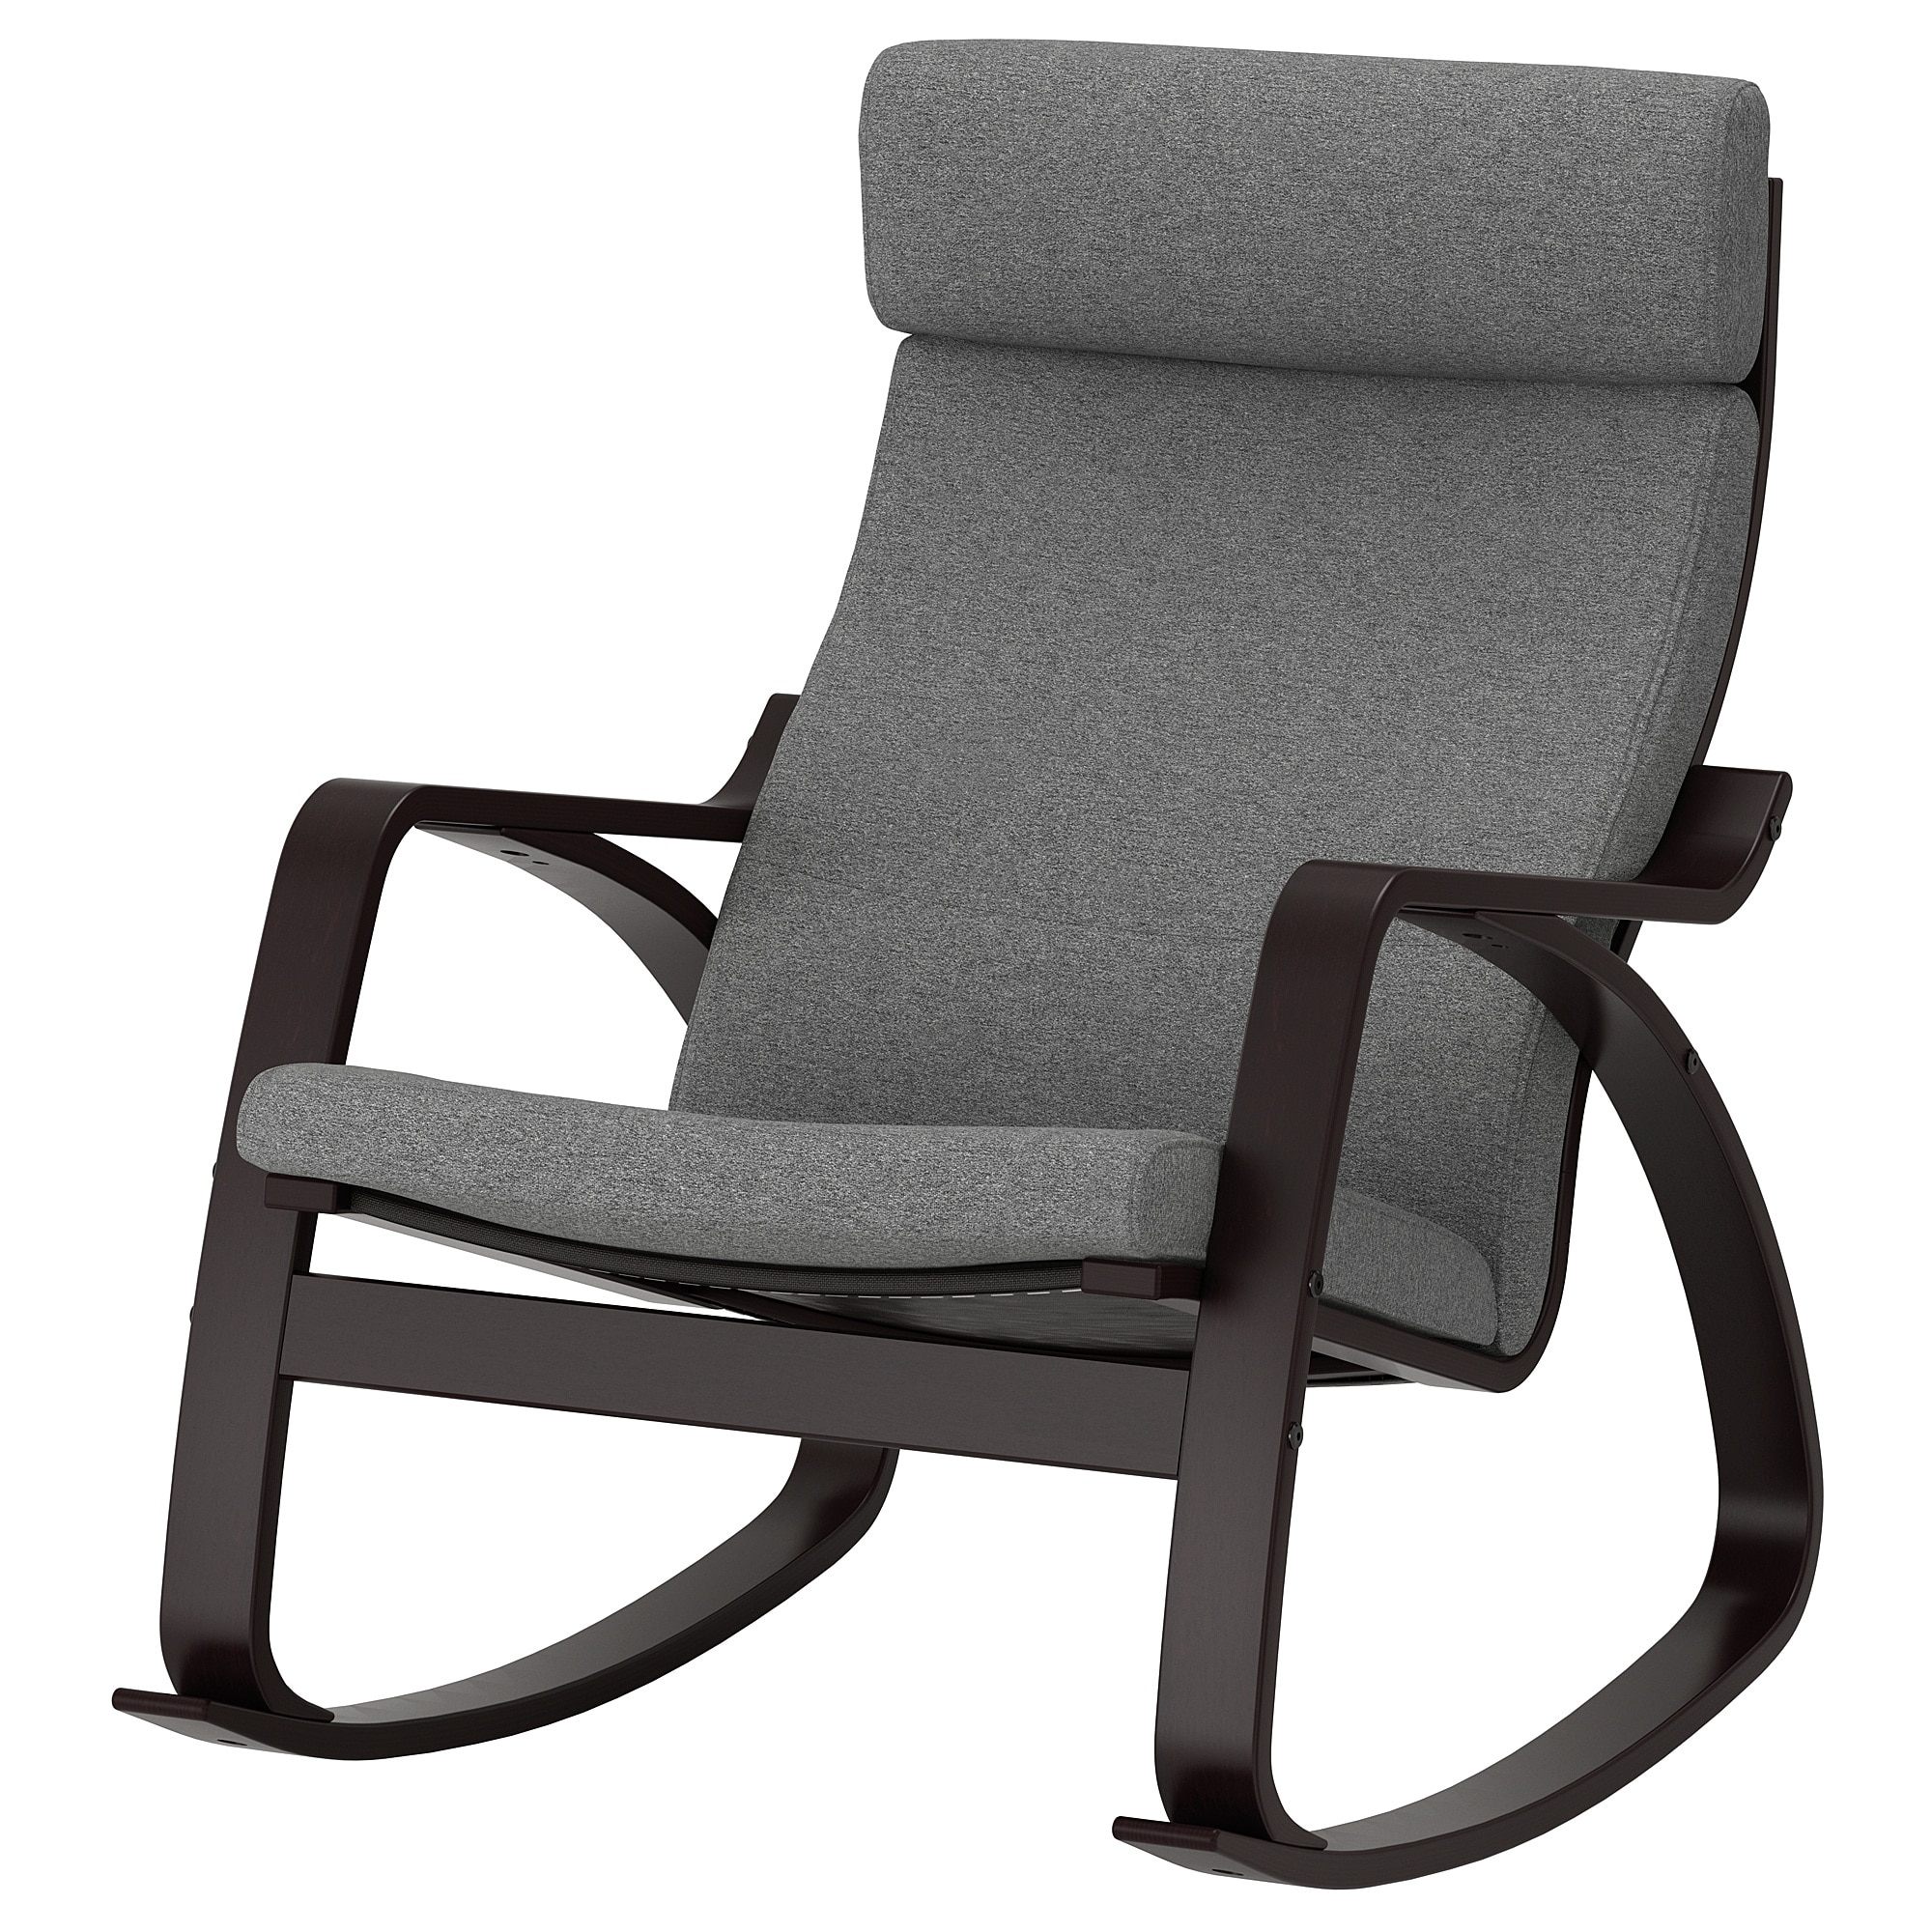 Inspiration about Rocking Chair Poäng Black Brown, Lysed Grey Intended For Rocking Chairs & Lounge Chairs In Grey (#19 of 20)